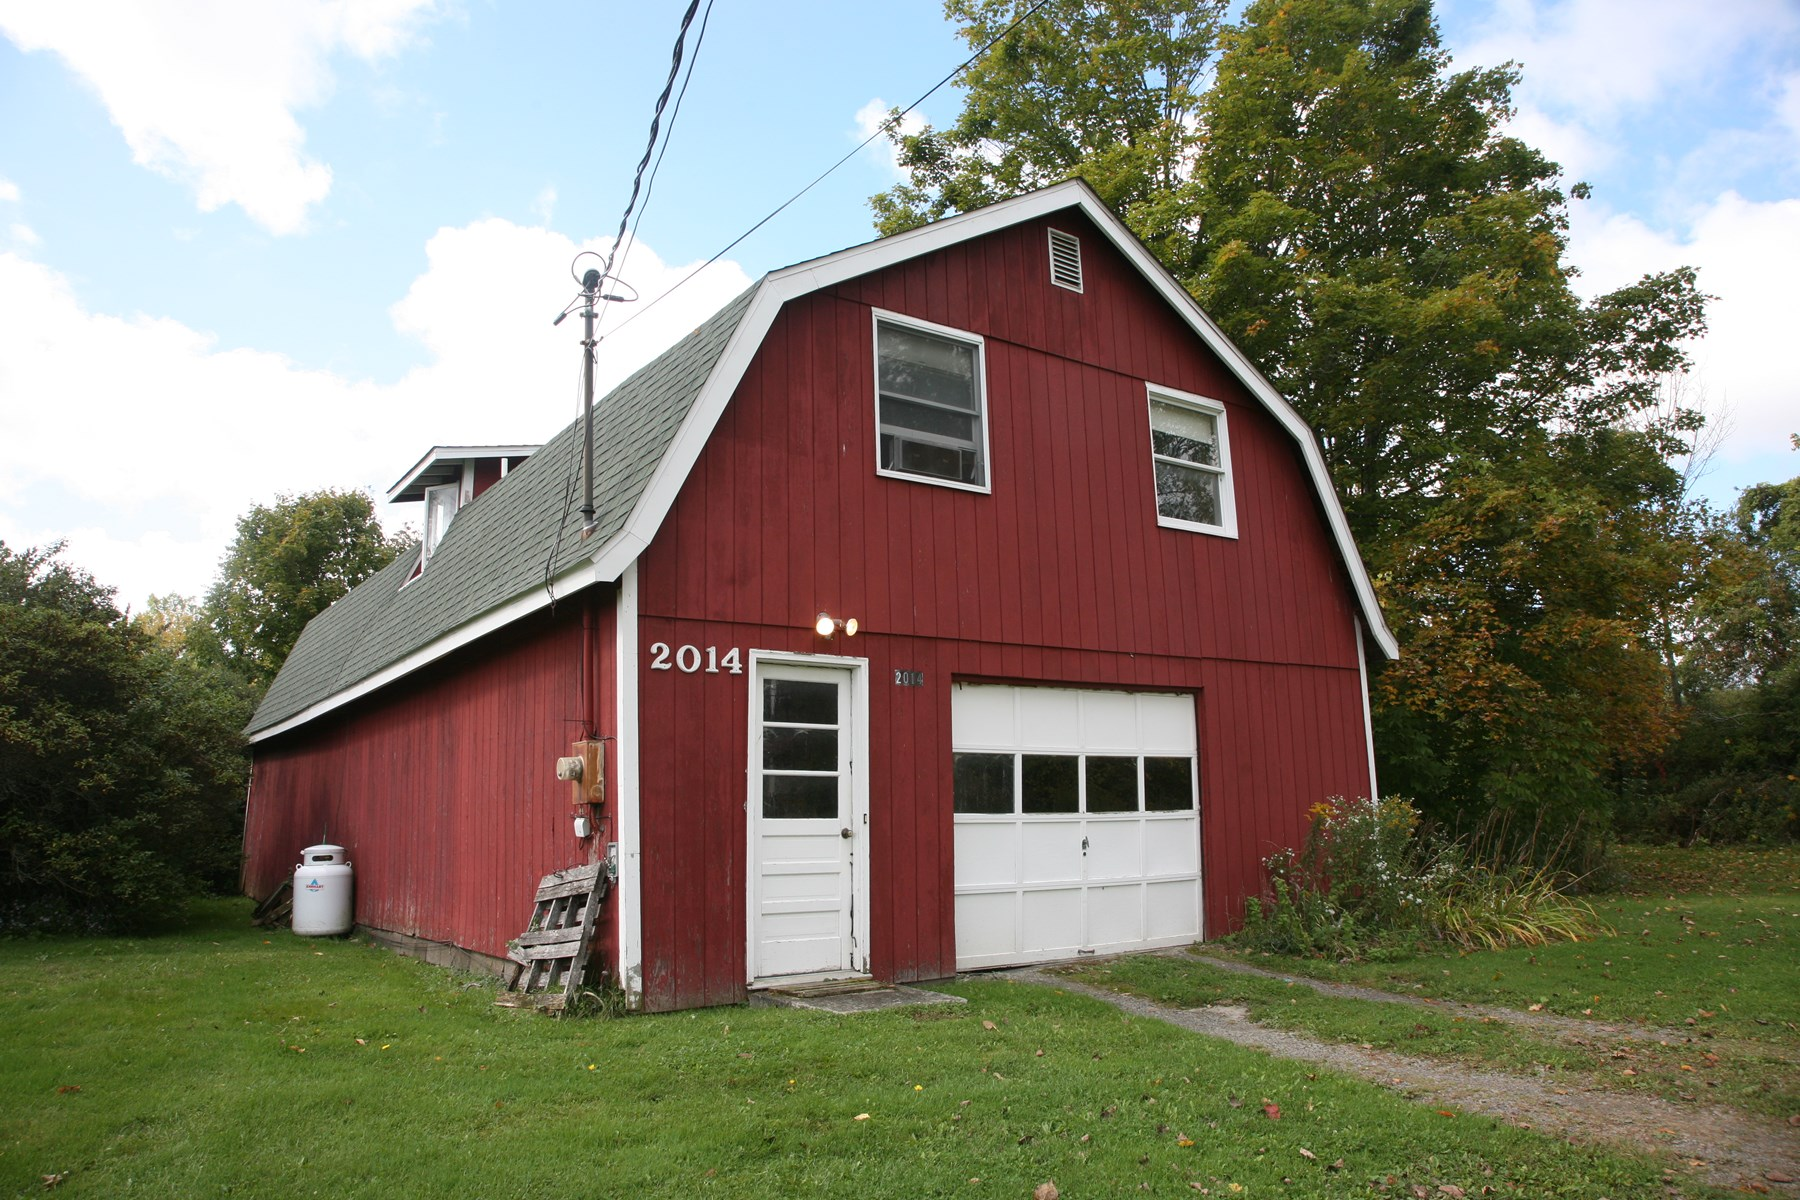 102 ACRE FARM FOR SALE NEAR ITHACA, NY